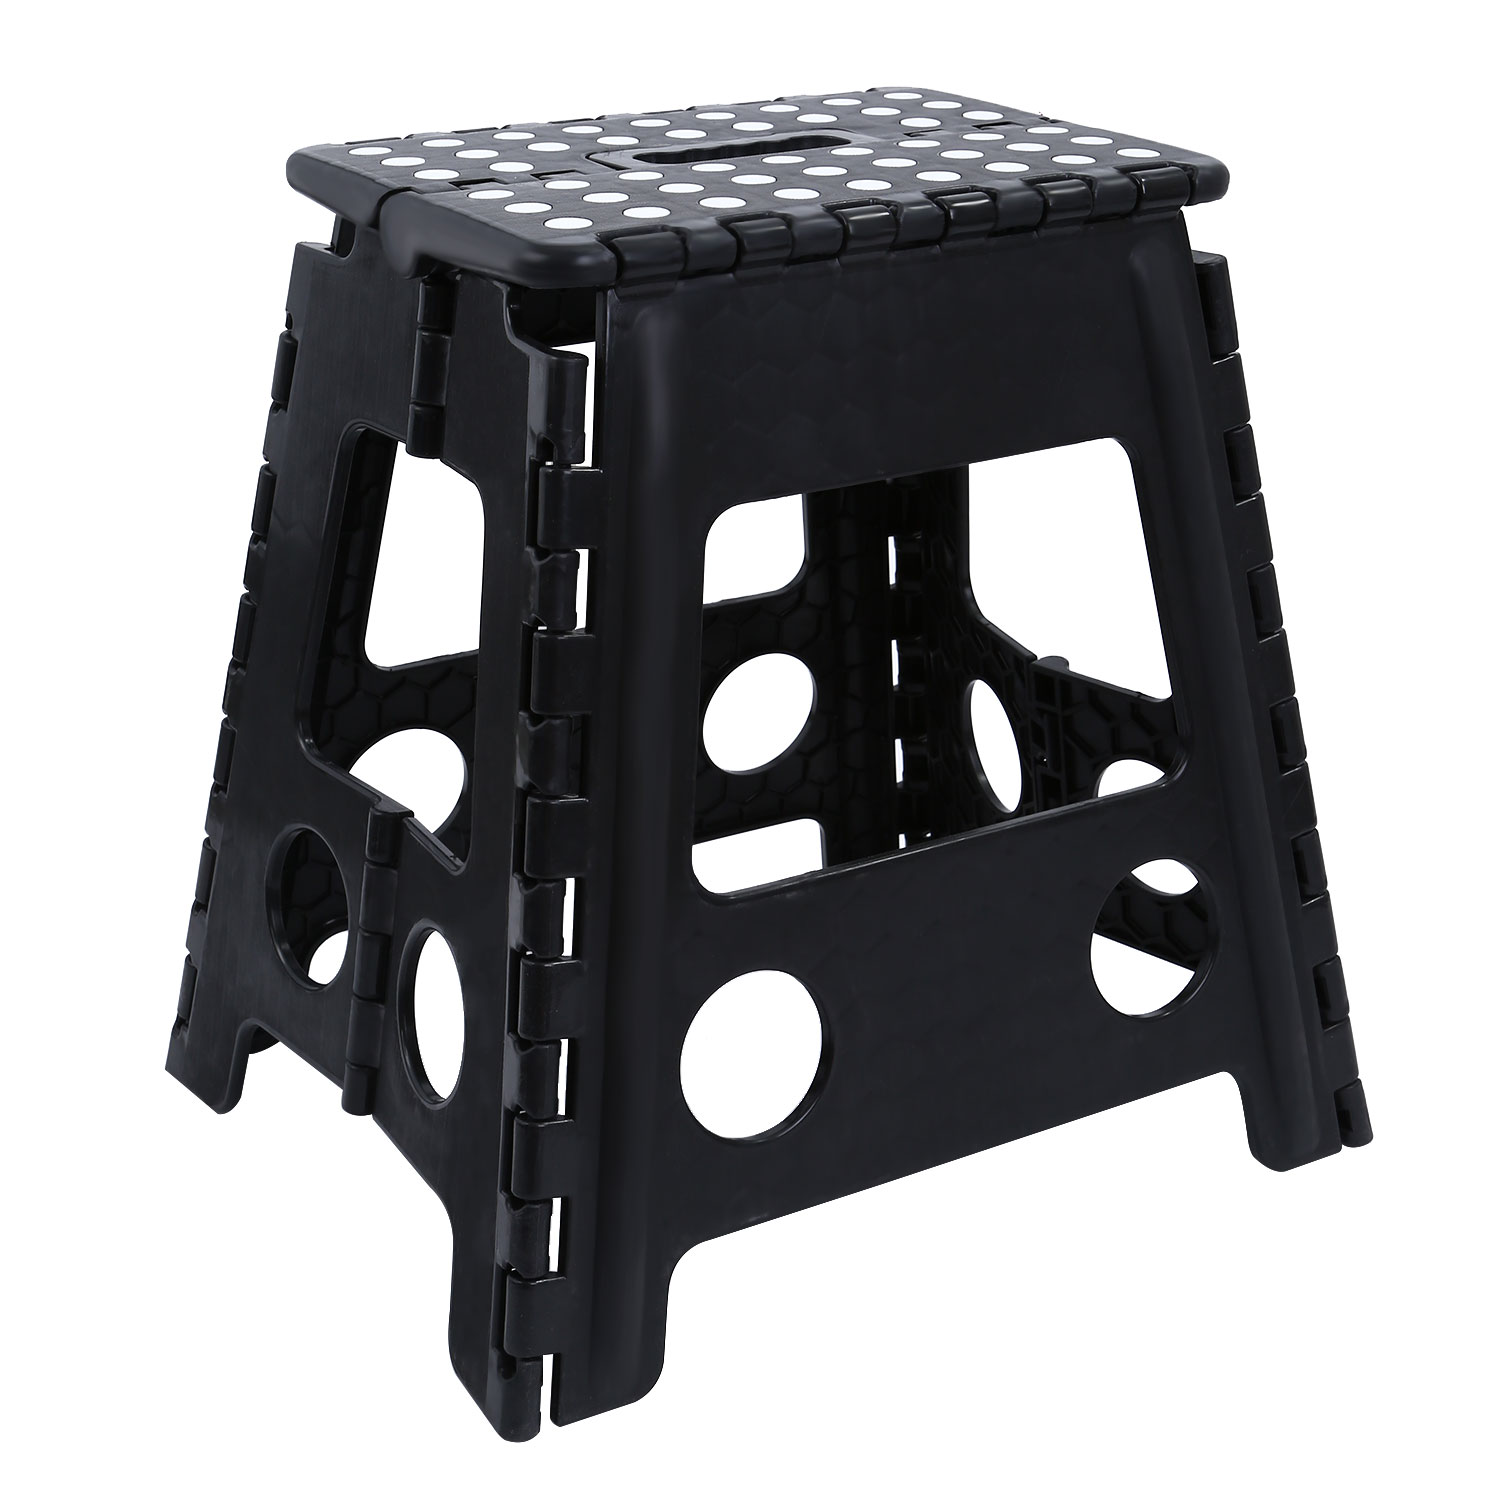 Toddlers kids adults folding step stool for bathroom kitchen garden anti slip ebay Bathroom step stool for kids